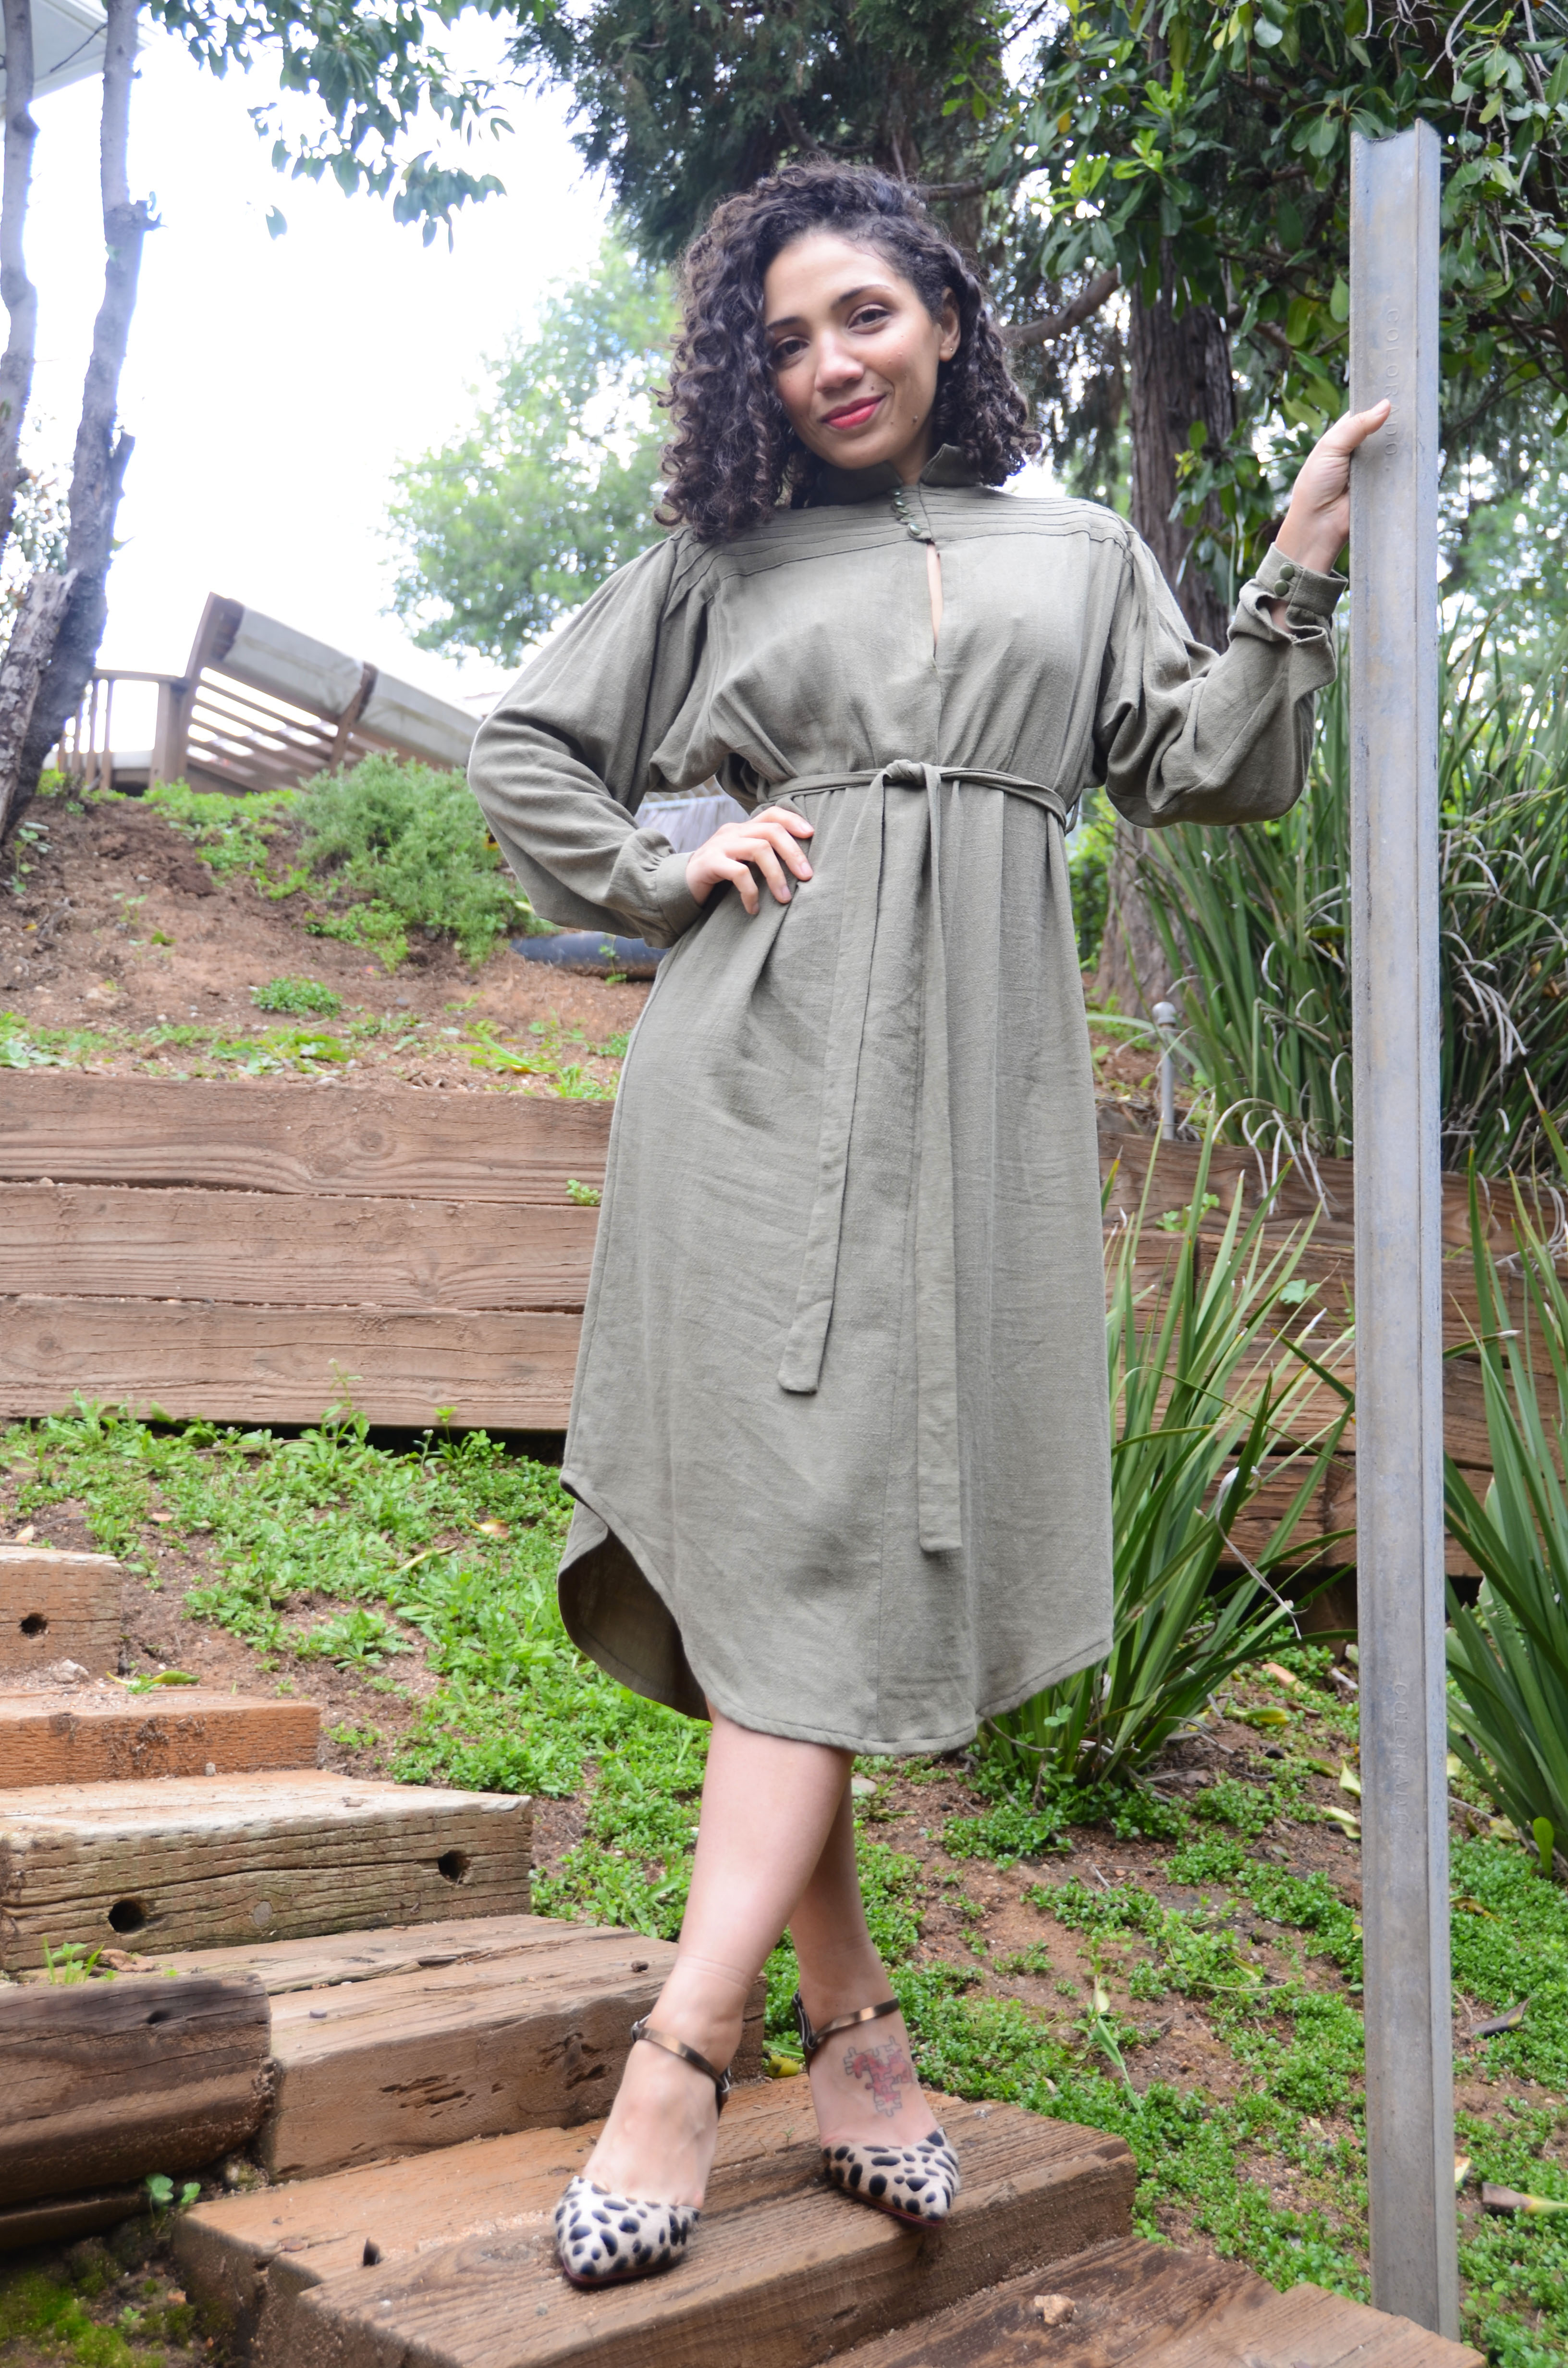 c7d3591201d5d I call it The Eponine Dress for reasons that are obvious if you are  familiar at all with Les Miz- Eponine's character is beautiful, sad, and  tragic, ...